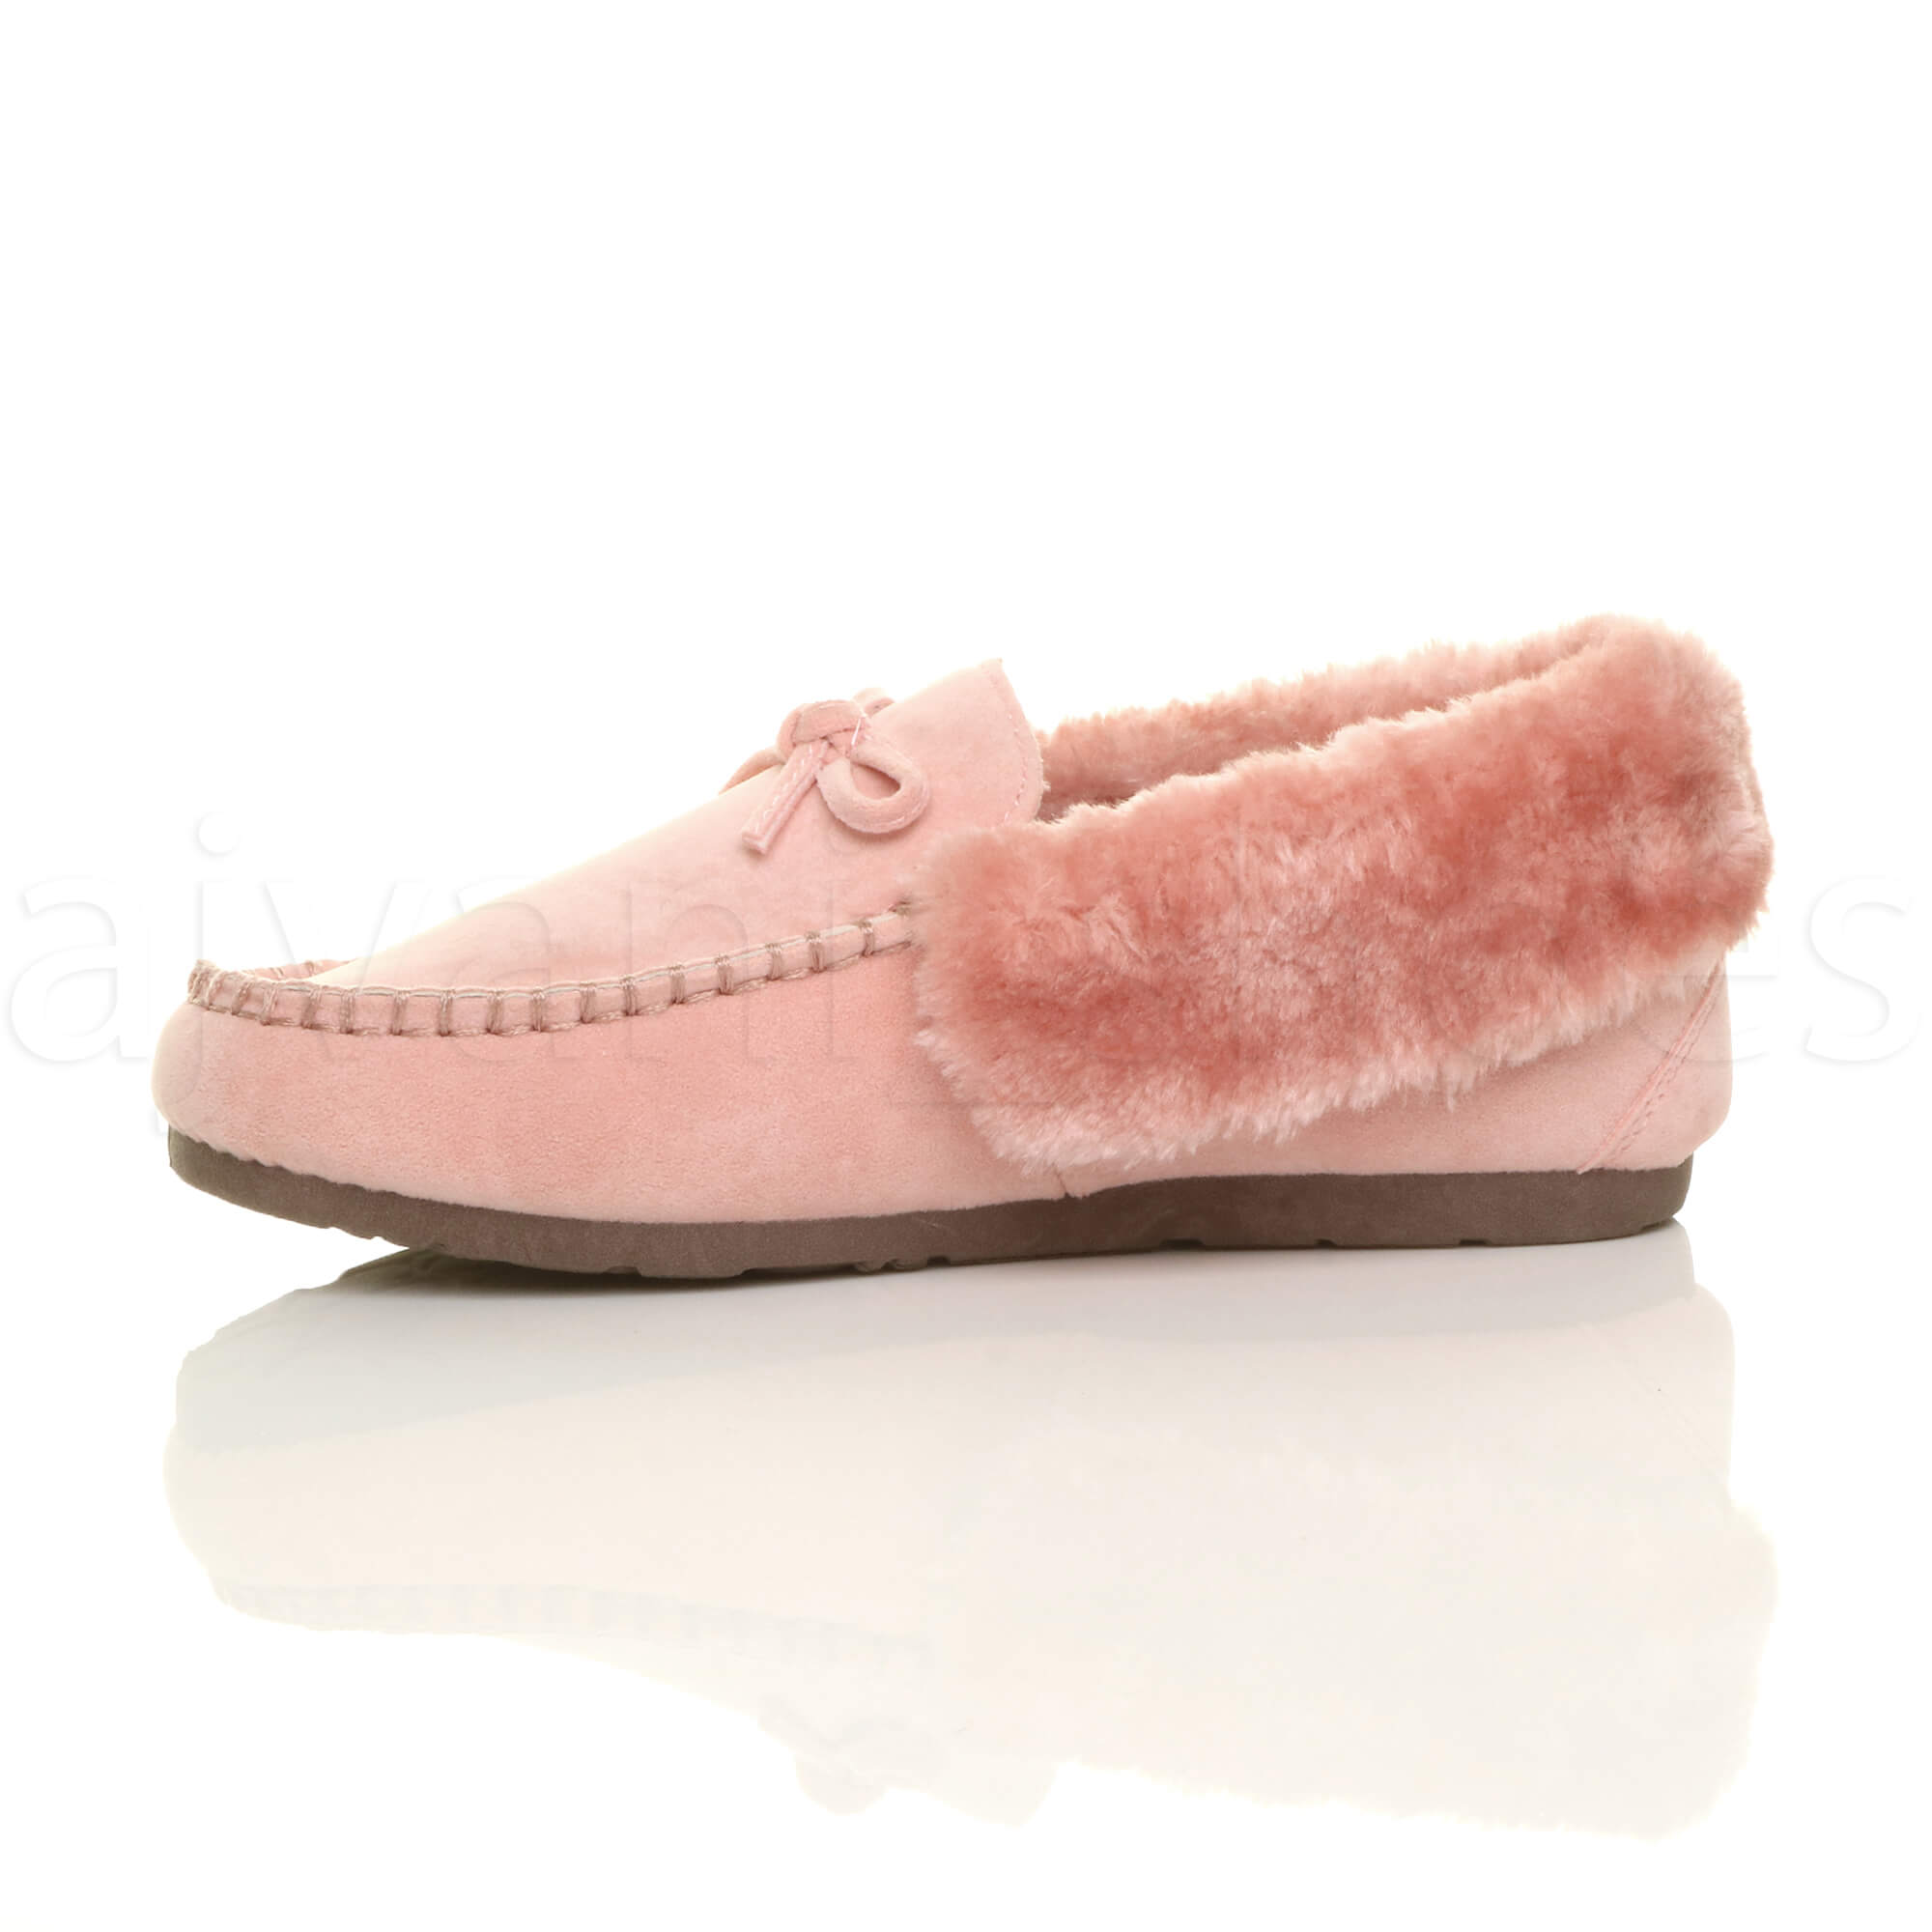 WOMENS-LADIES-FUR-COLLAR-LINED-LUXURY-FLEXIBLE-SOLE-MOCCASINS-SLIPPERS-SIZE